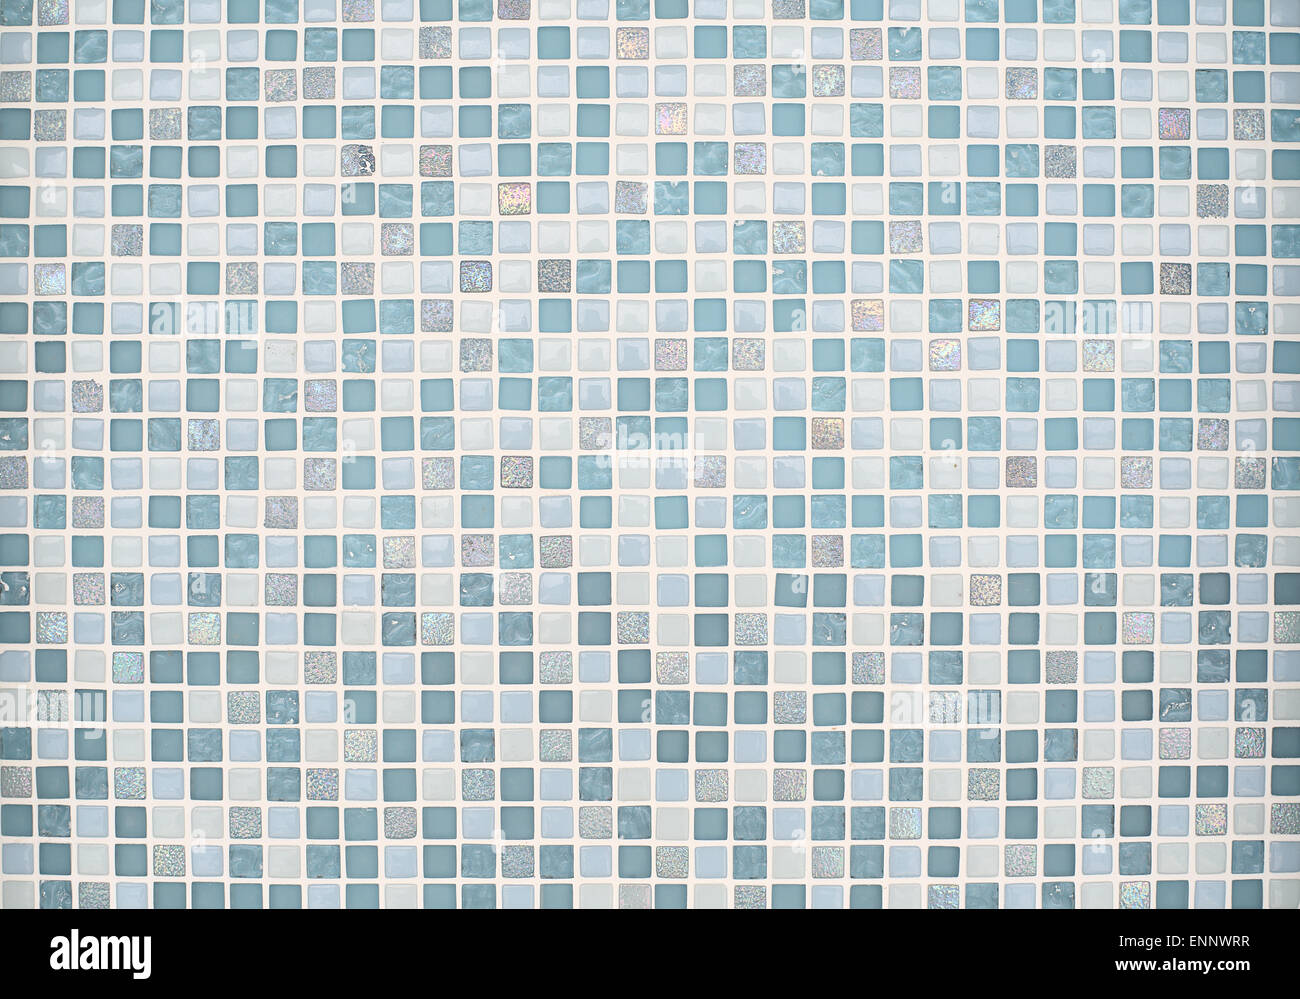 Graphic Pattern Background Tile Wall Paper Stock Photos & Graphic ...